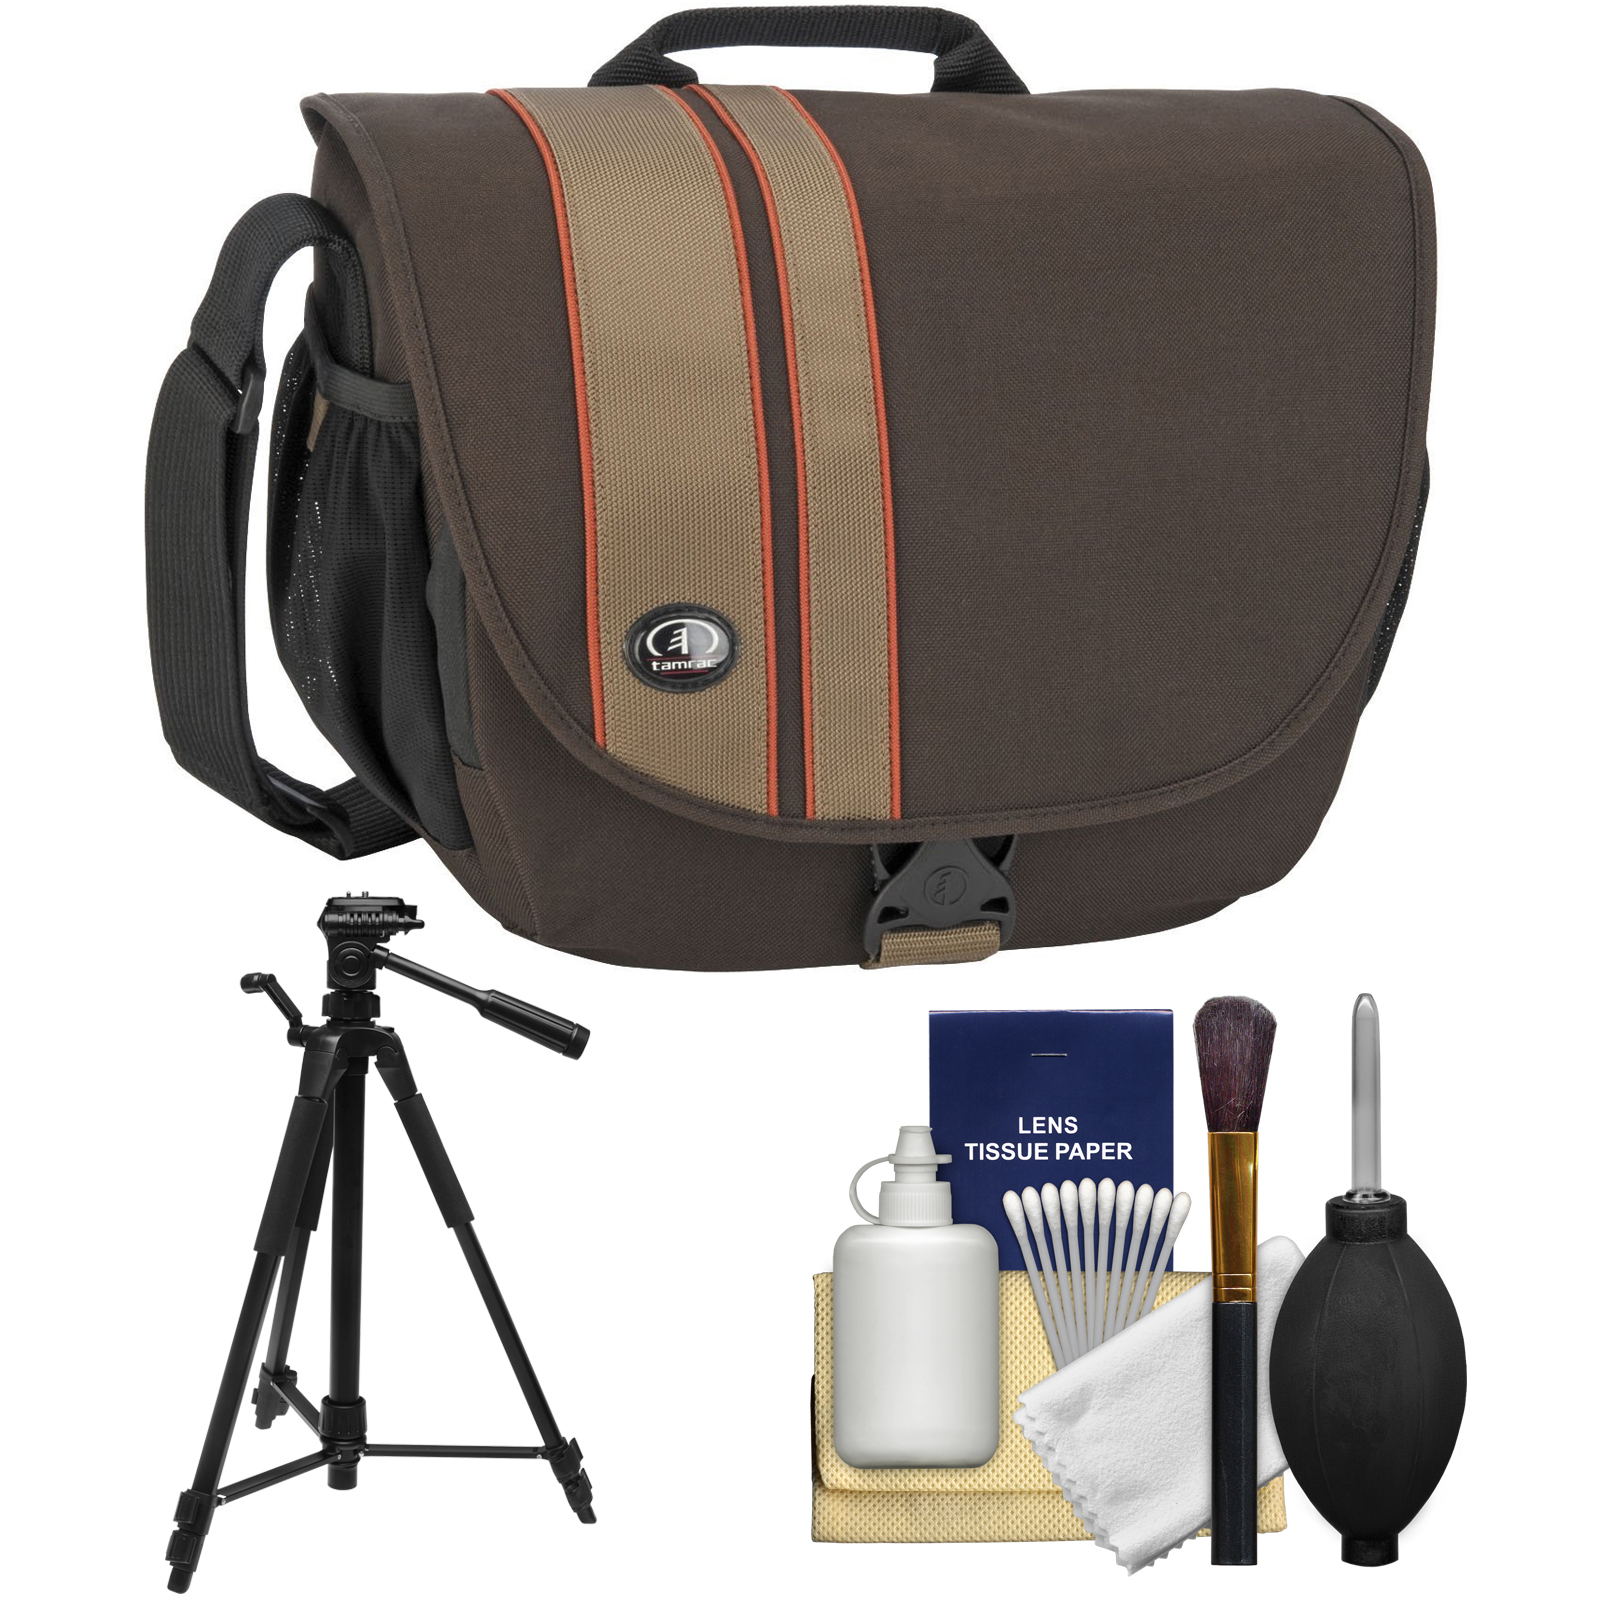 Tamrac 3445 Rally 5 Camera/Netbook/iPad Bag (Brown/Tan) with Deluxe Photo/Video Tripod + Accessory Kit for Canon, Nikon, Olympus, Panasonic, Fuji & Sony Alpha Cameras